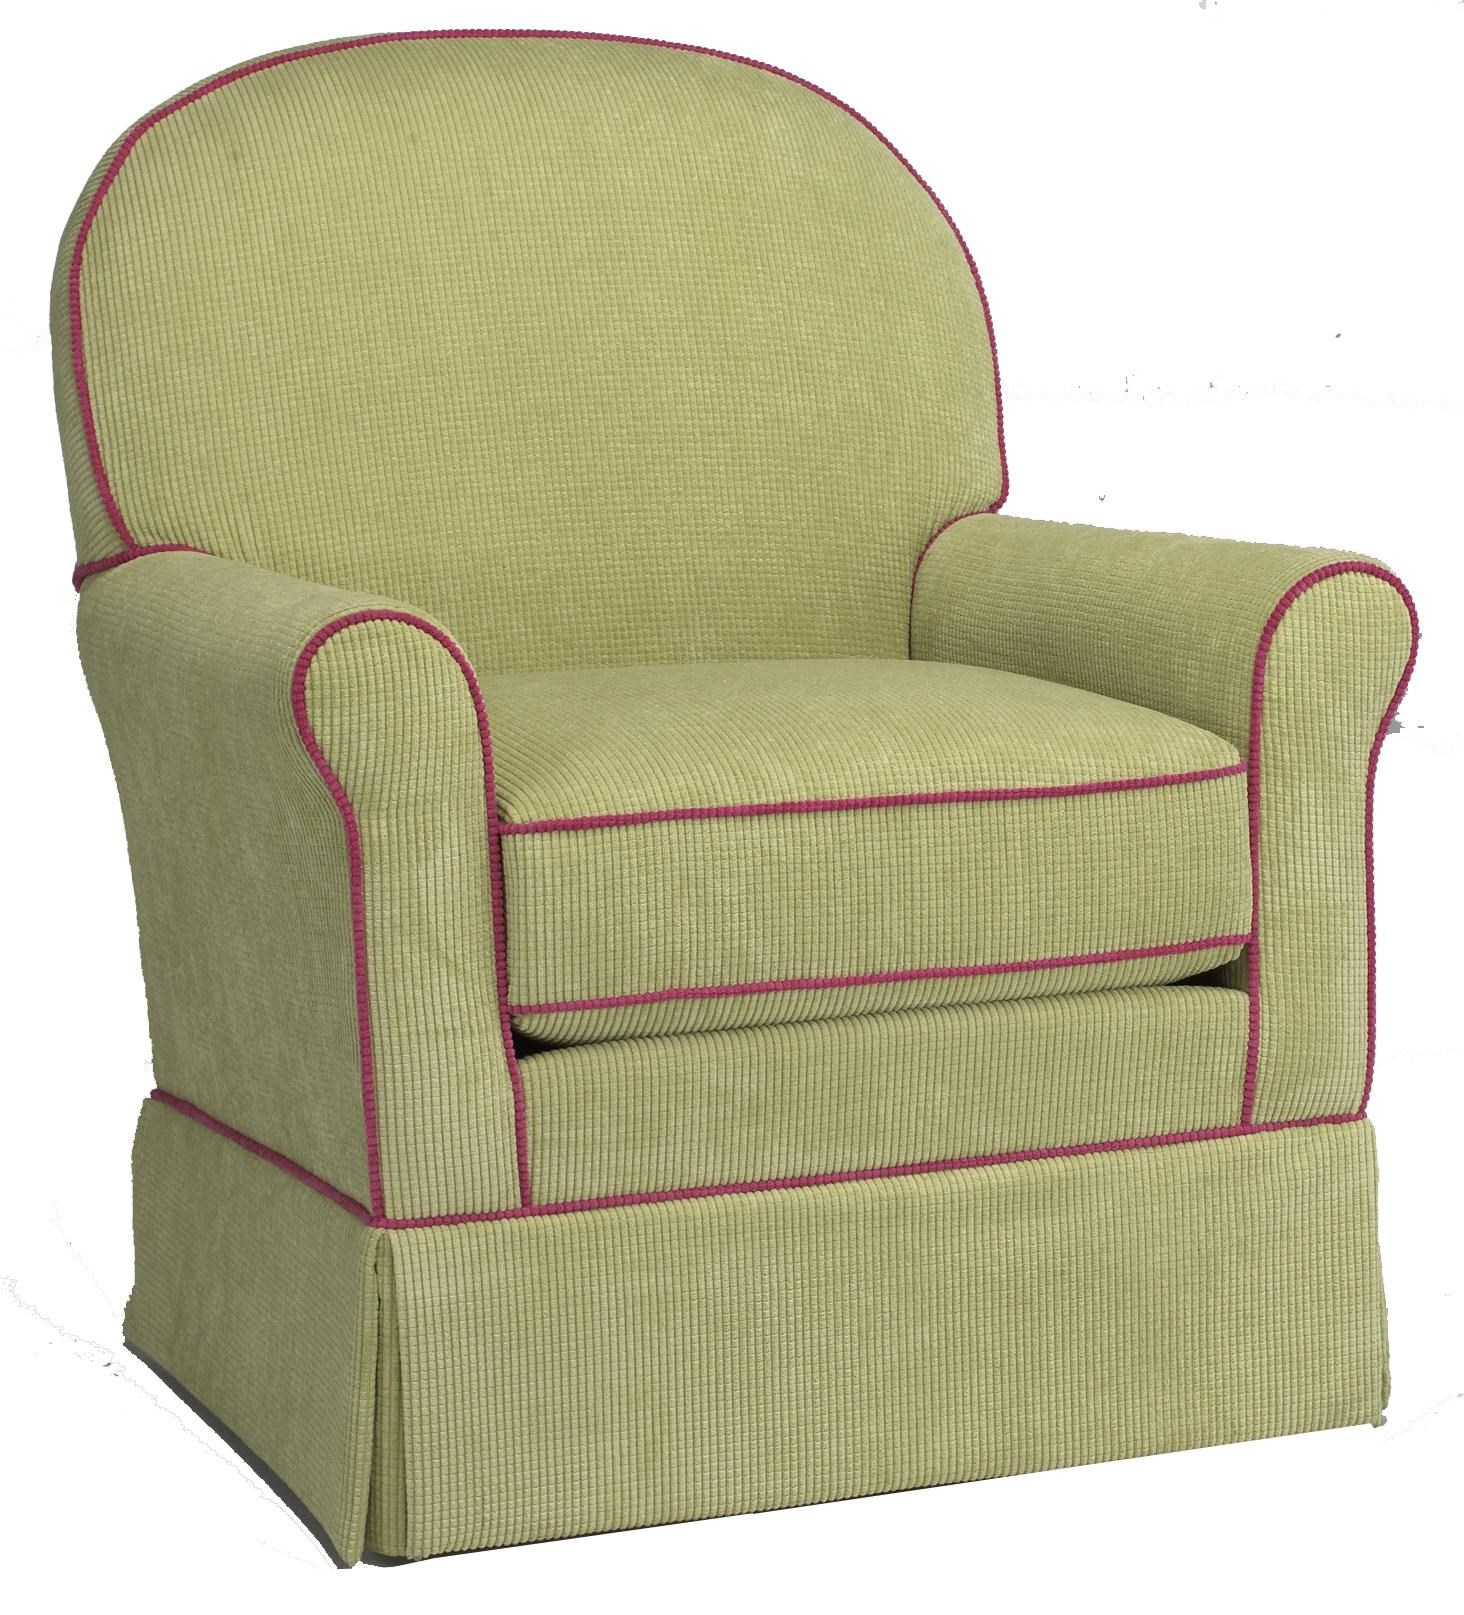 Incroyable Best Chairs Storytime Series Storytime Swivel Chairs And Ottomans Peyton  Swivel Chair With Curved Back